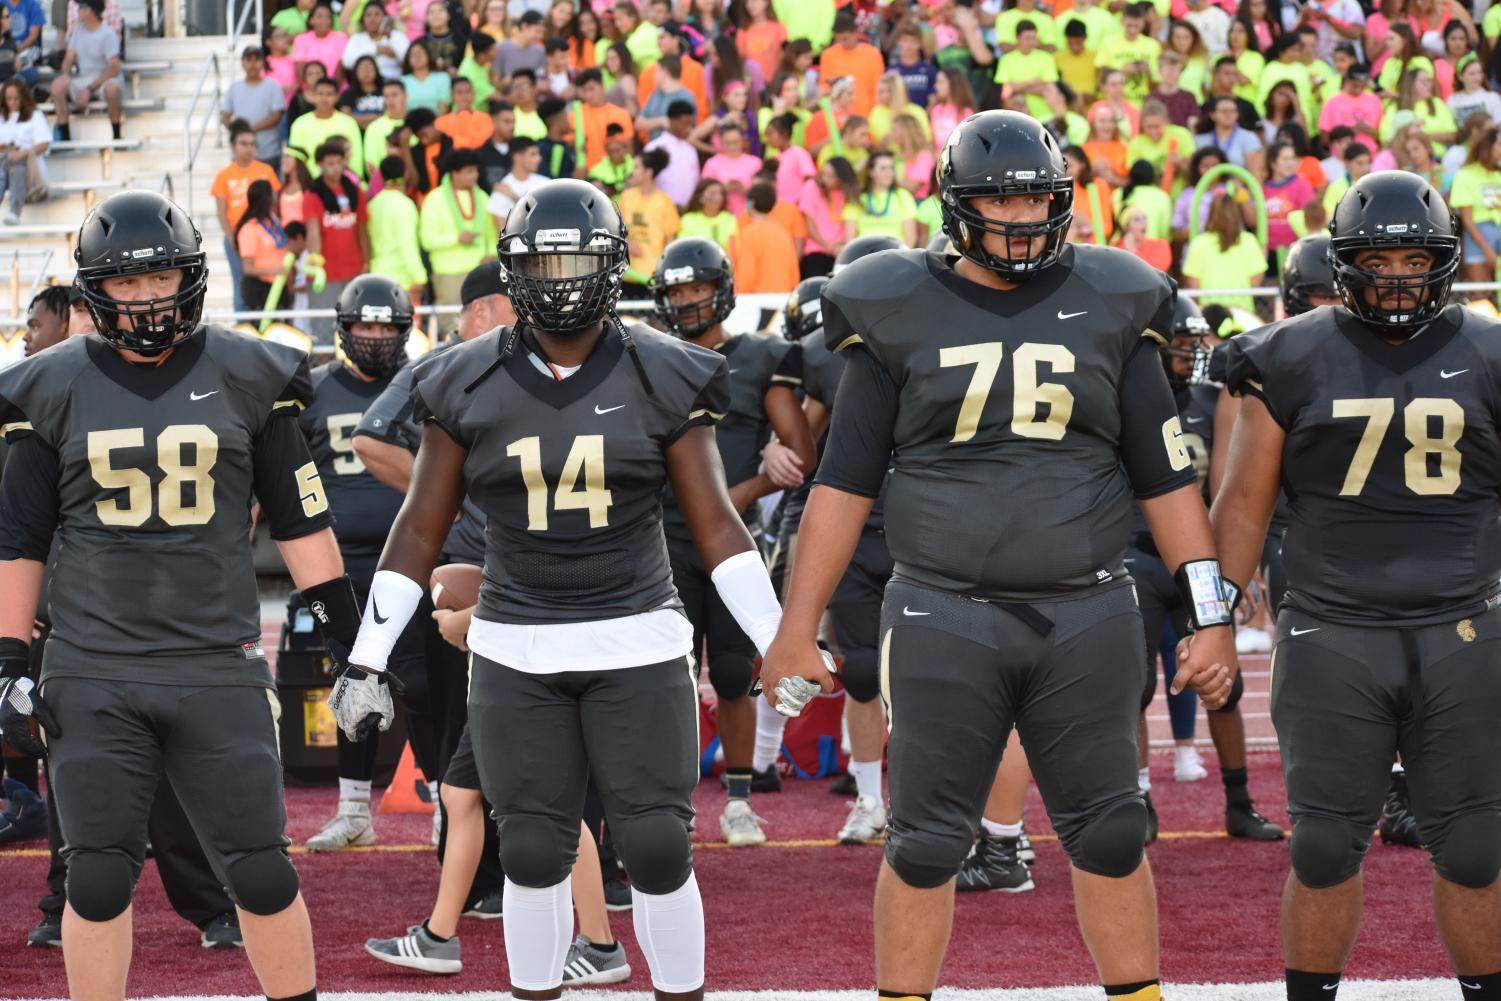 Seniors Tanner Matthias, Xavier Dunbar, Matthew Garza, and Tucker Richey hold hands in preparation to walk out on the field. (File Photo)